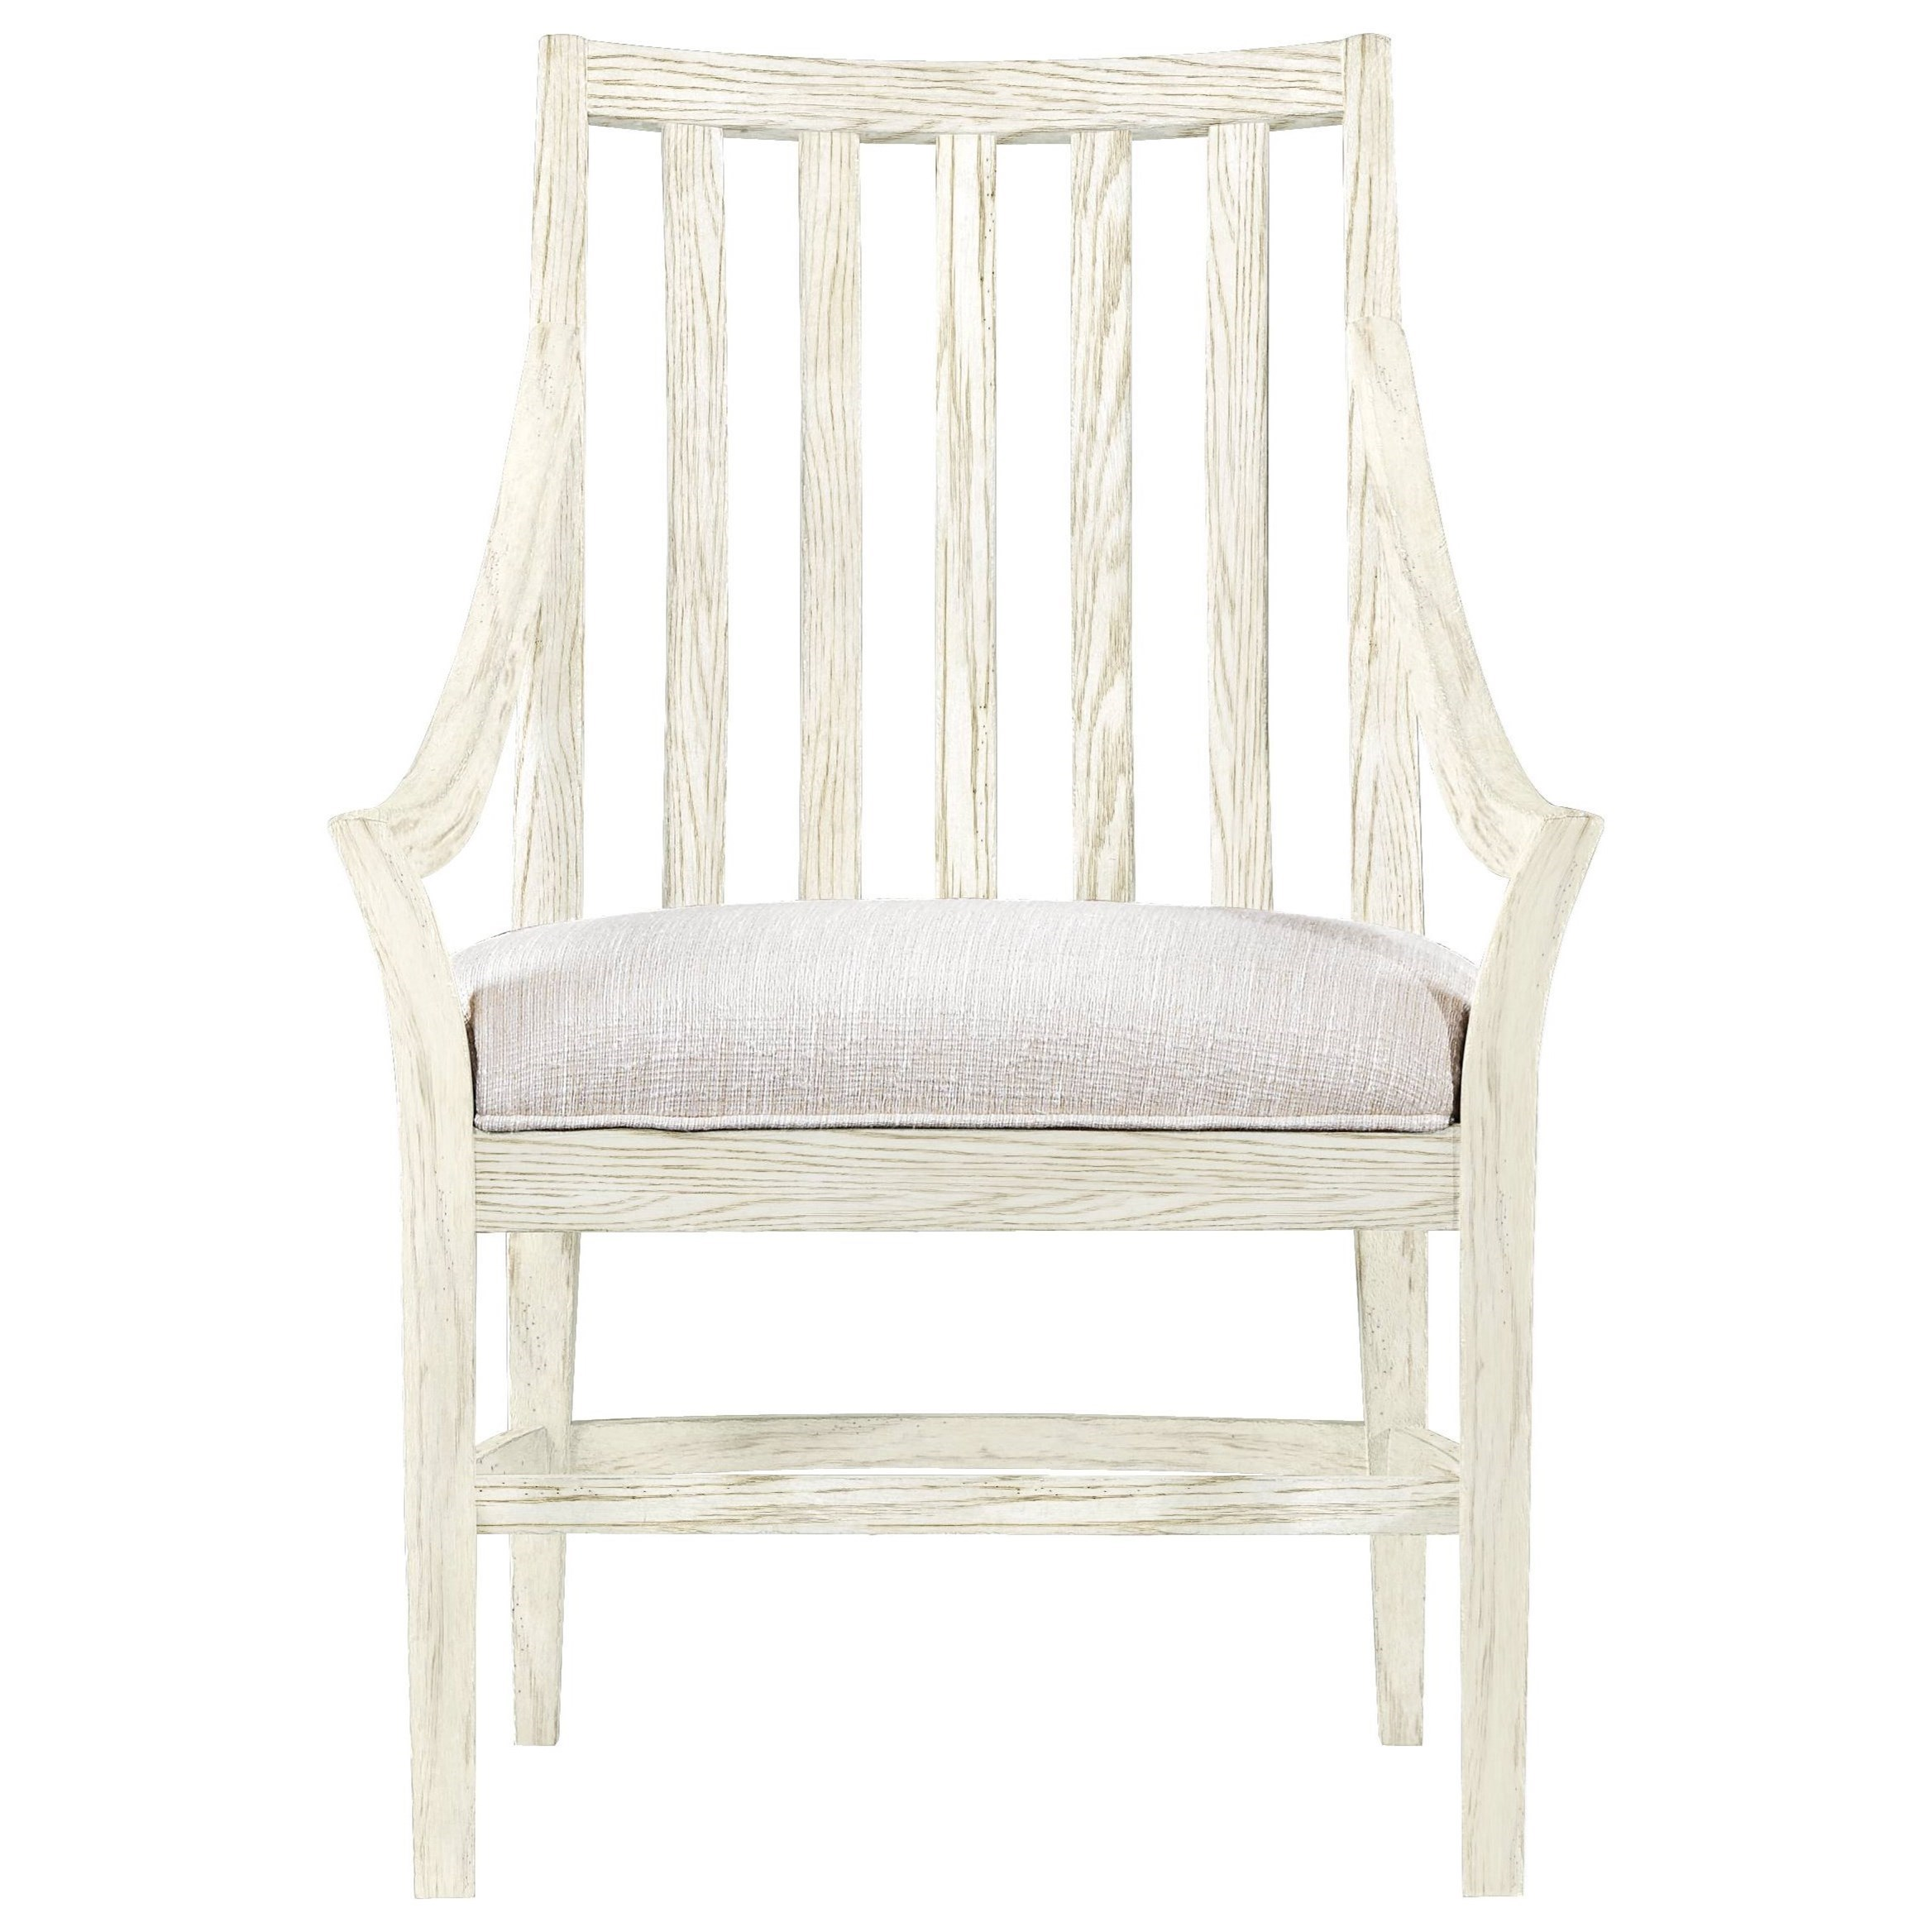 thebay furniture. Stanley Furniture Coastal Living ResortBy The Bay Dining Chair Thebay N